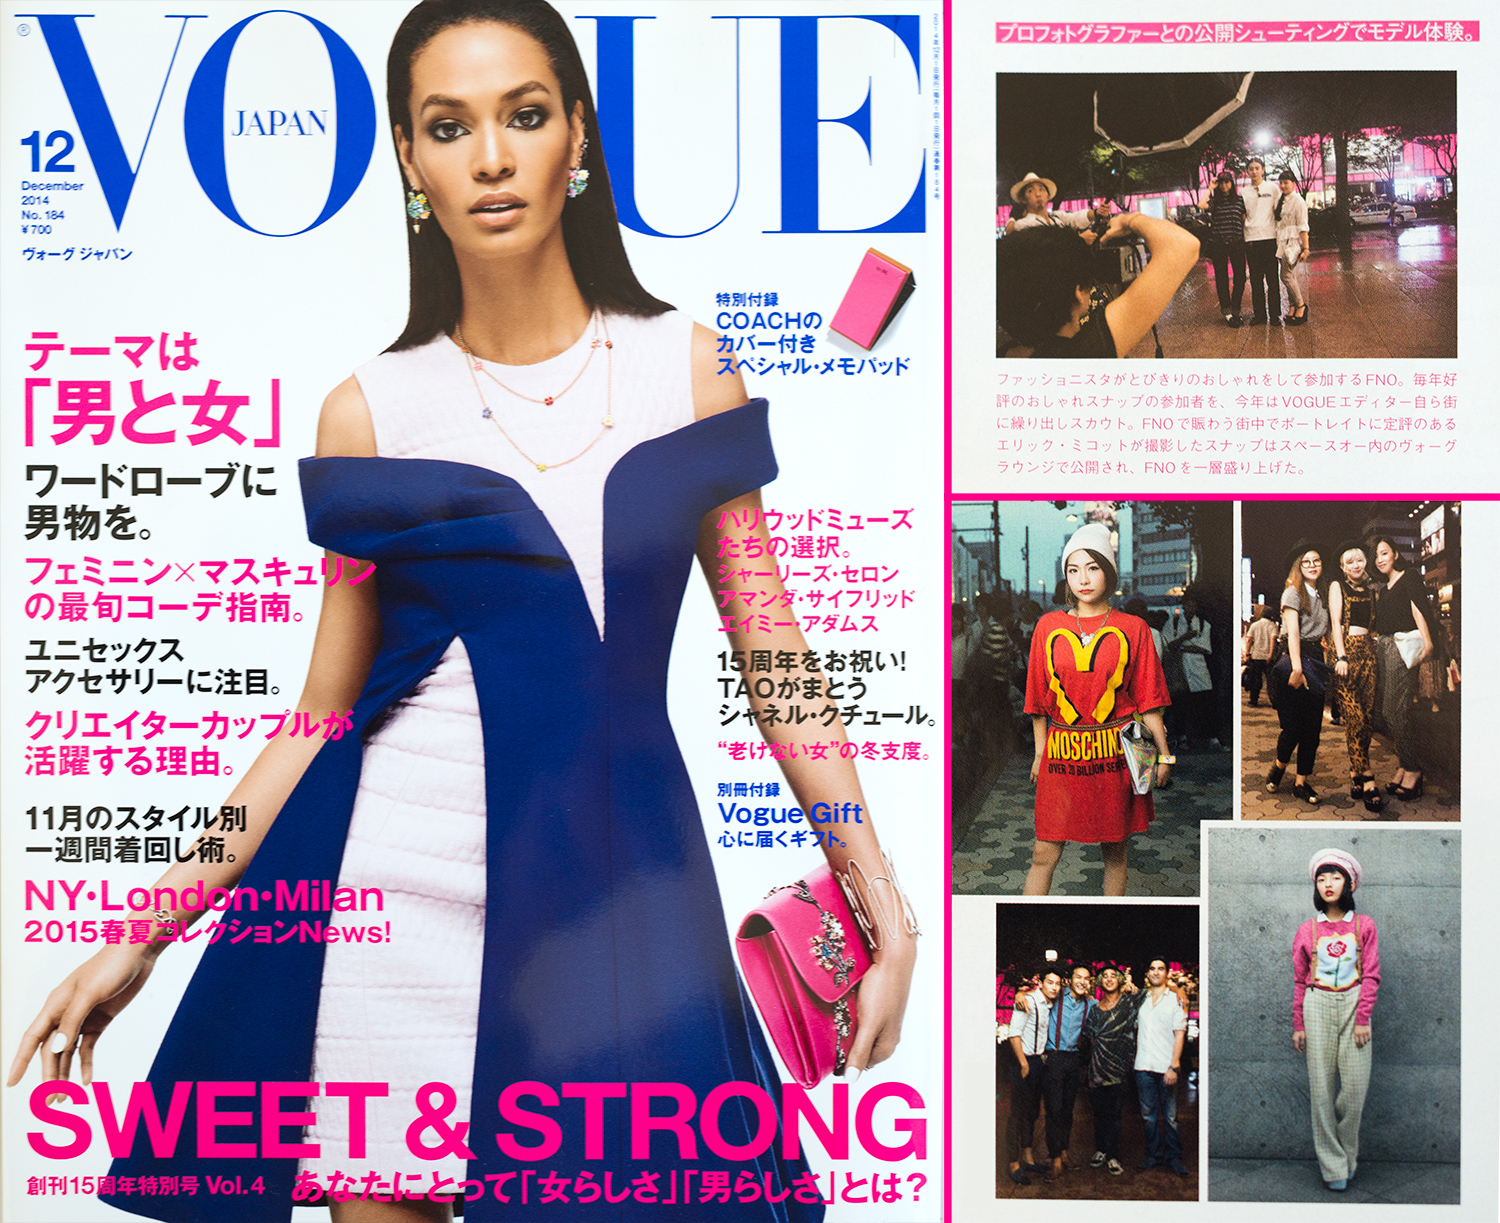 Some of the images as they appeared in the December issue